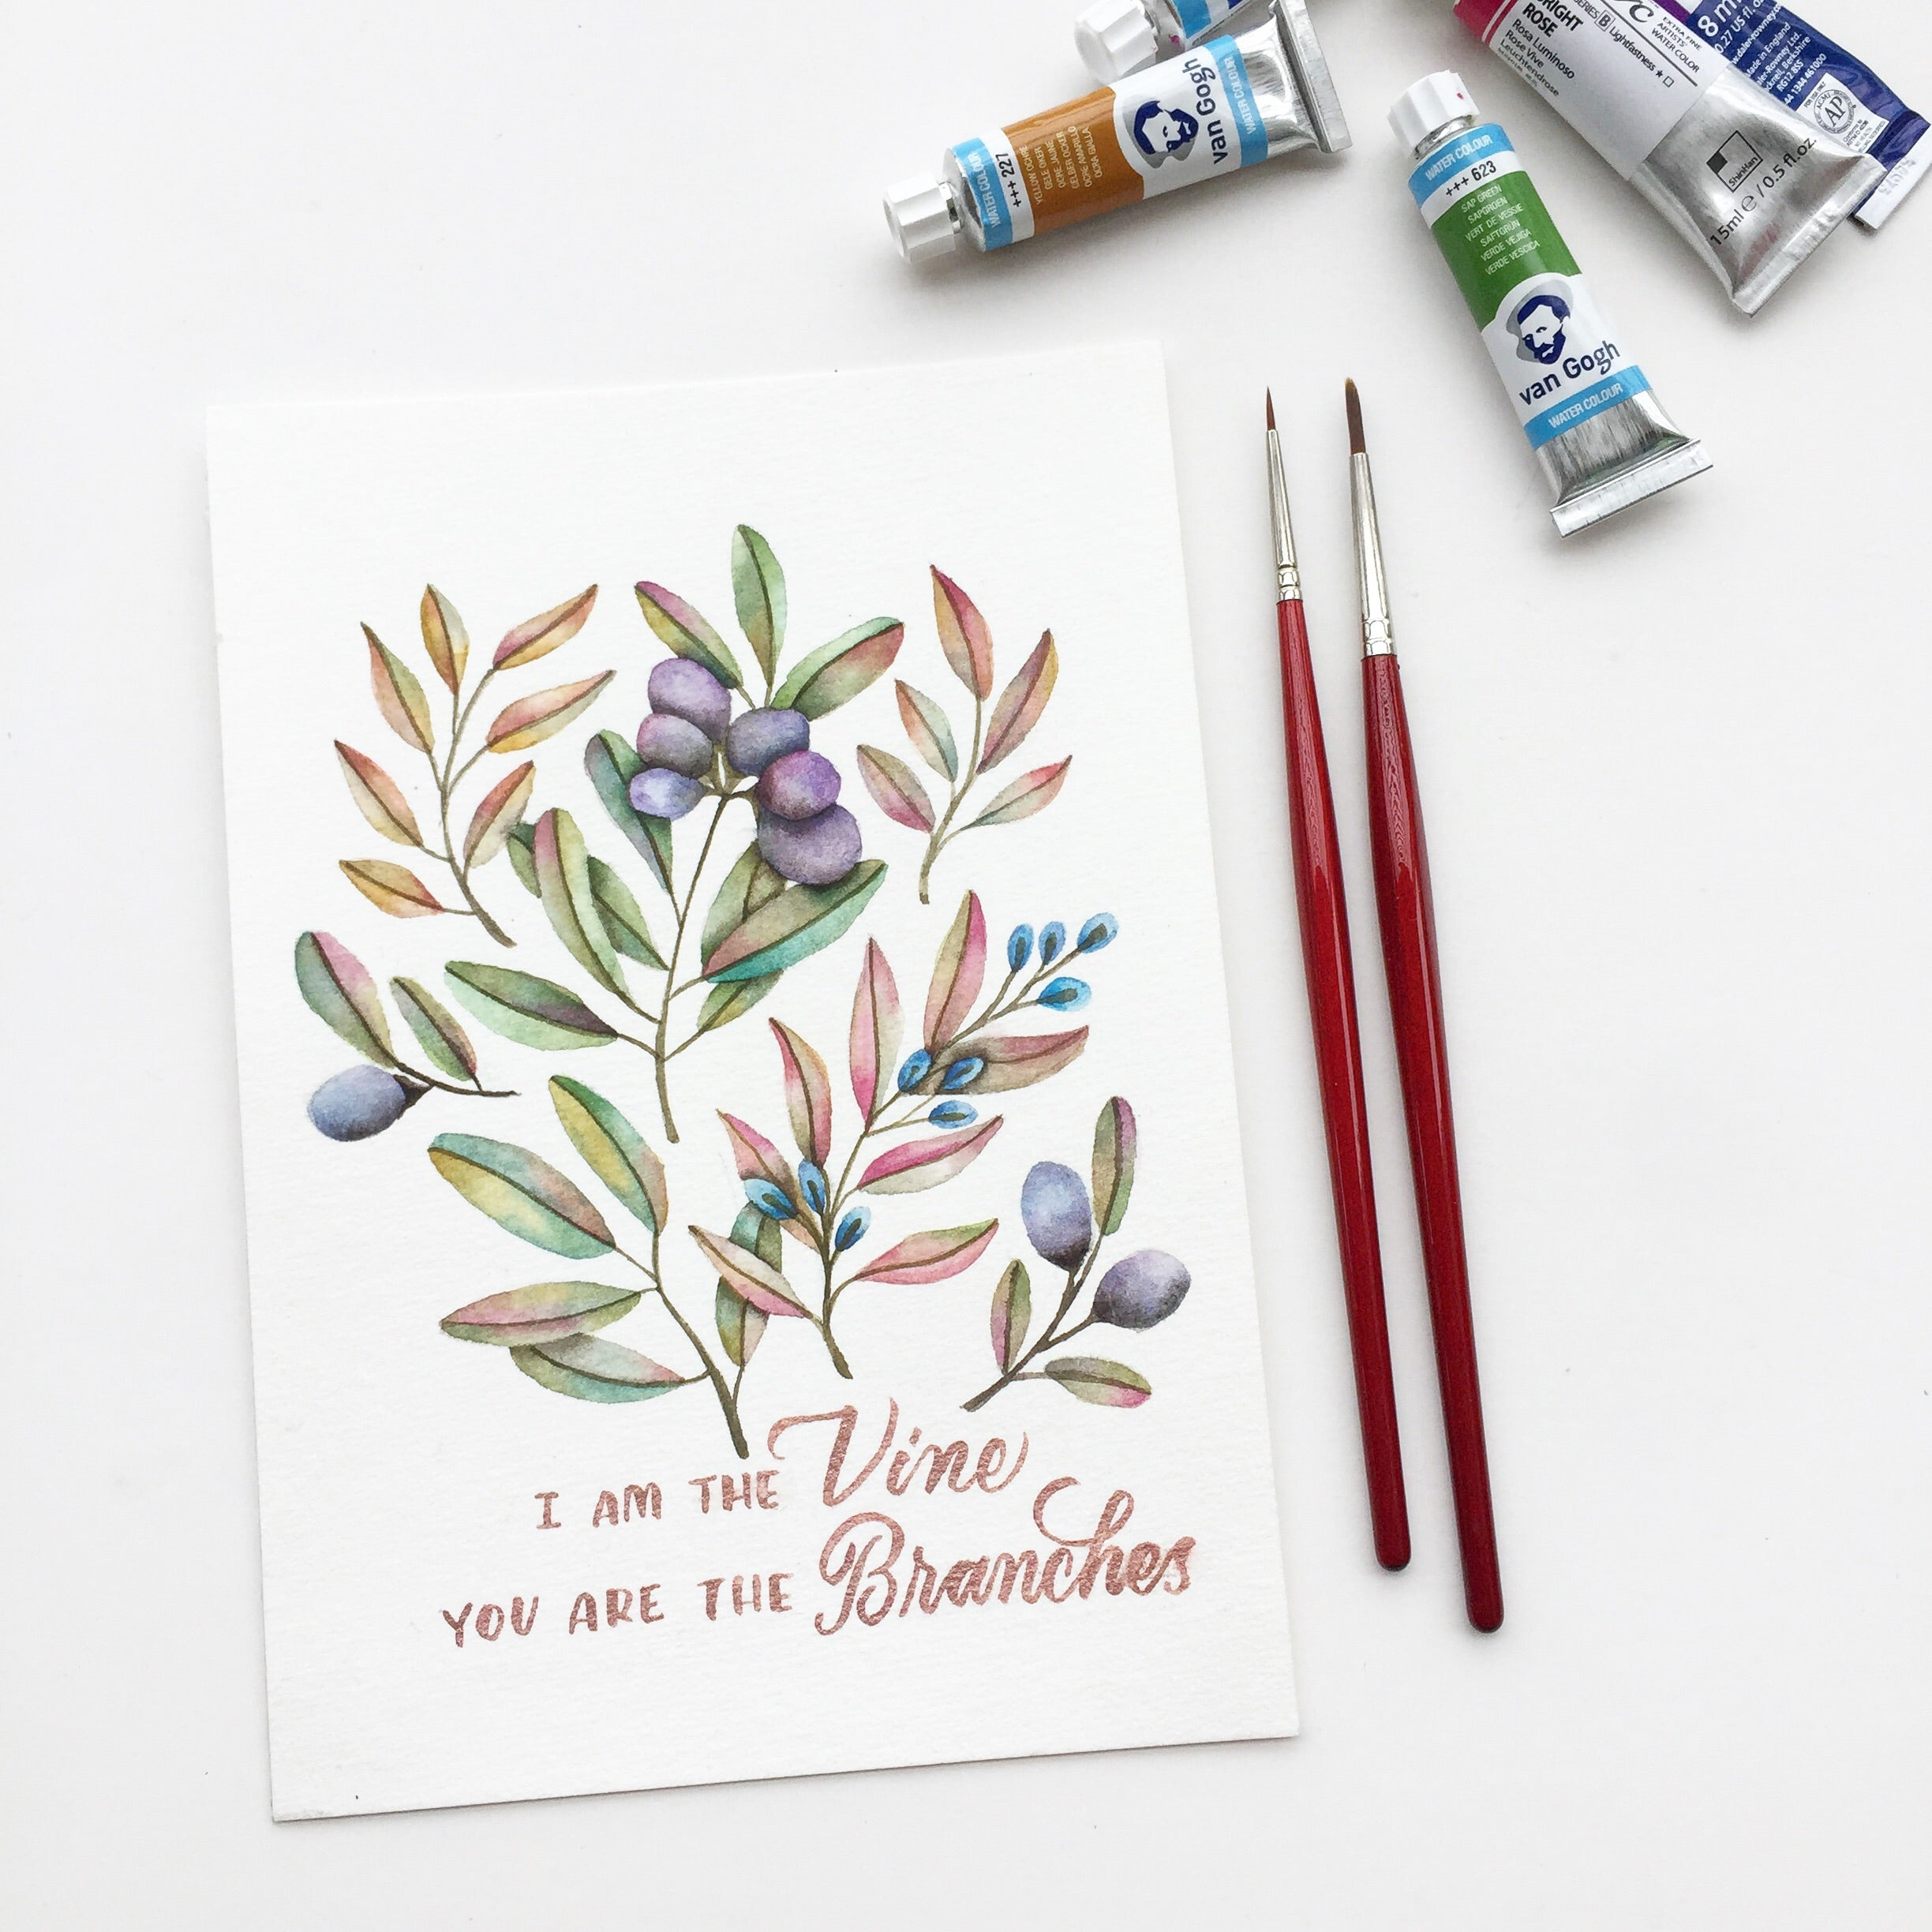 Wildflowers + Foliage: Modern Botanical Illustrations for Calligraphy